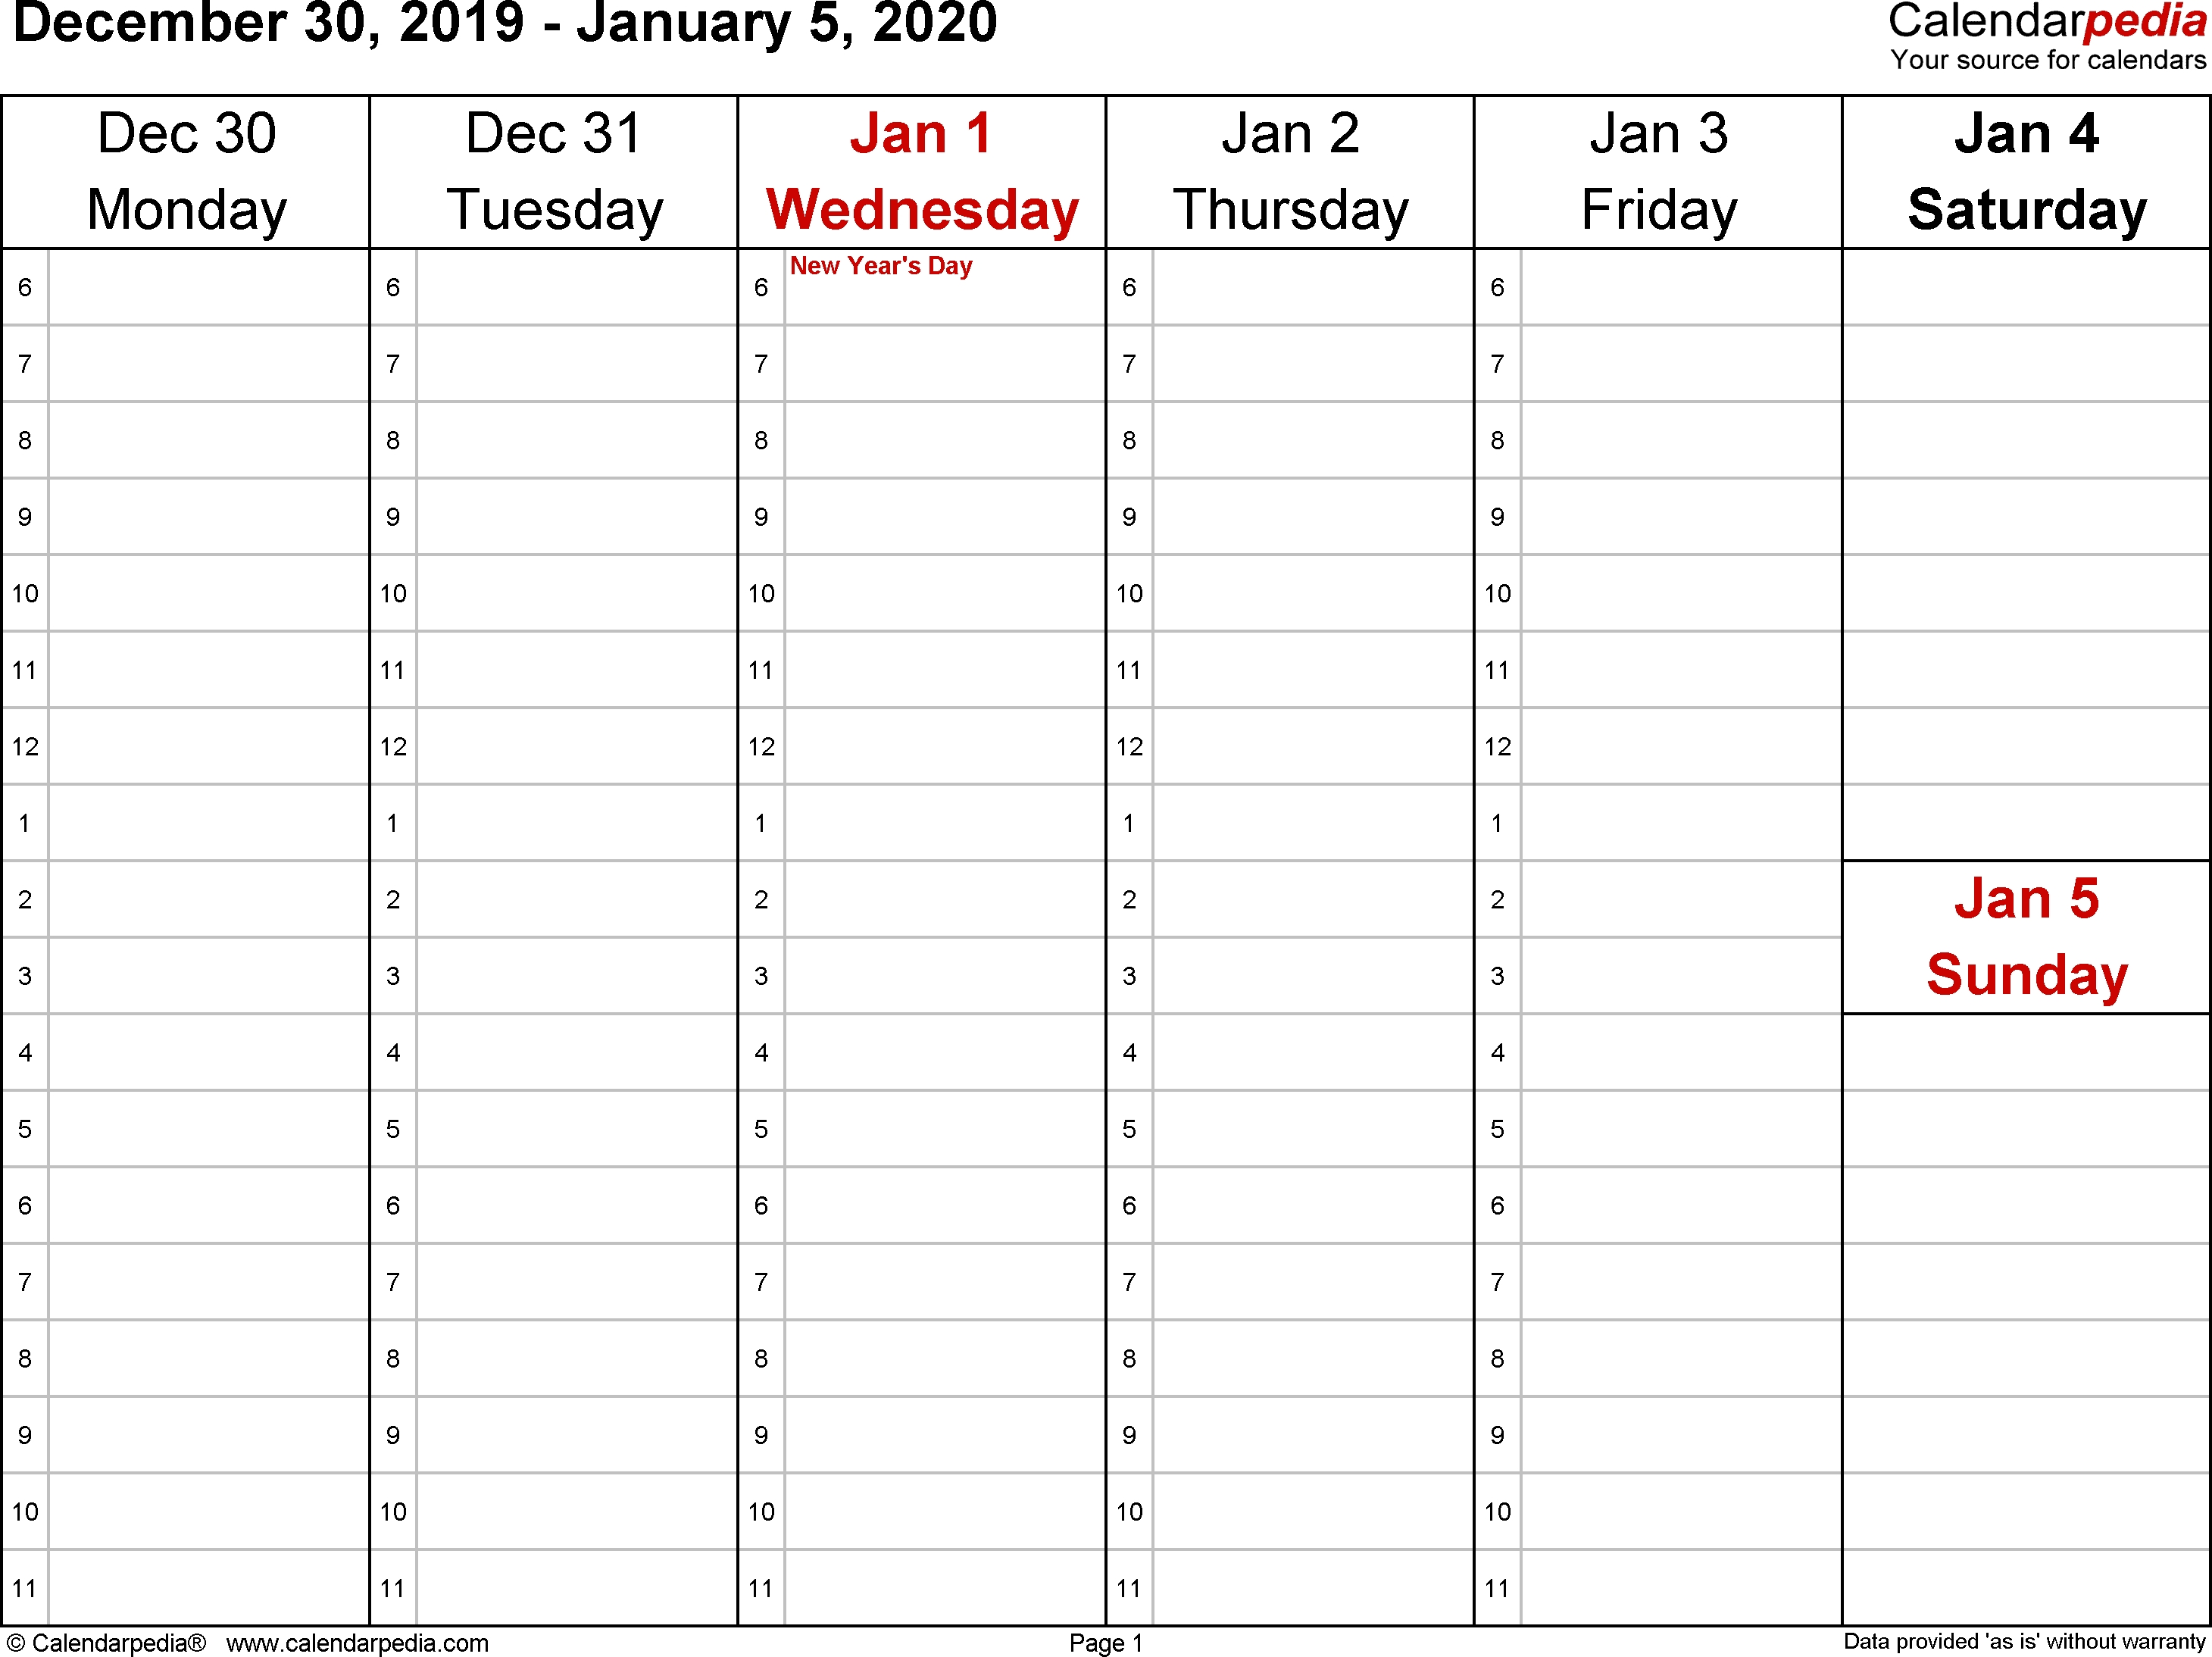 Weekly Calendar 2020 For Word - 12 Free Printable Templates in 2020 Week Wise Calendar